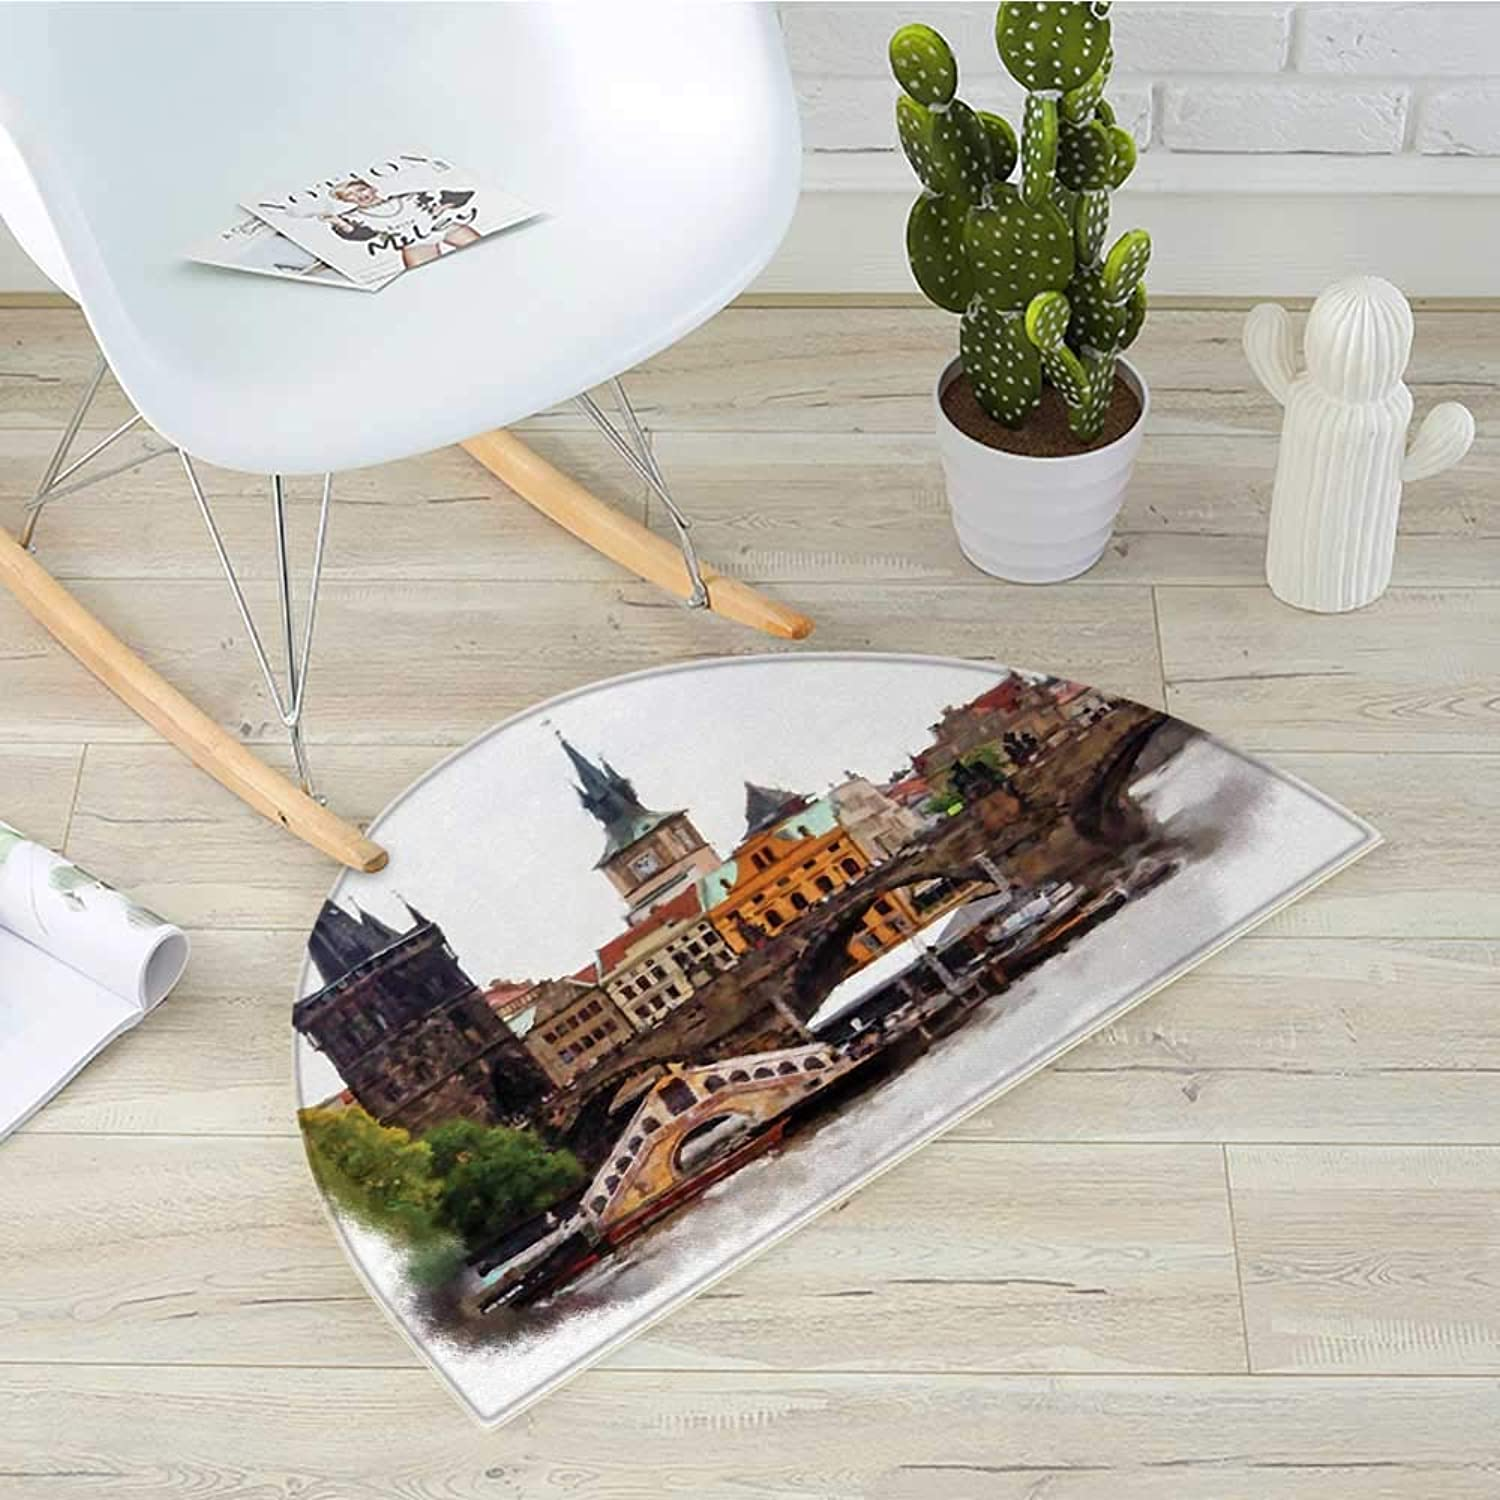 Scenery Semicircular CushionEuropean Country Landscape with Houses and River Watercolors Style Artistic Print Entry Door Mat H 35.4  xD 53.1  Multicolor